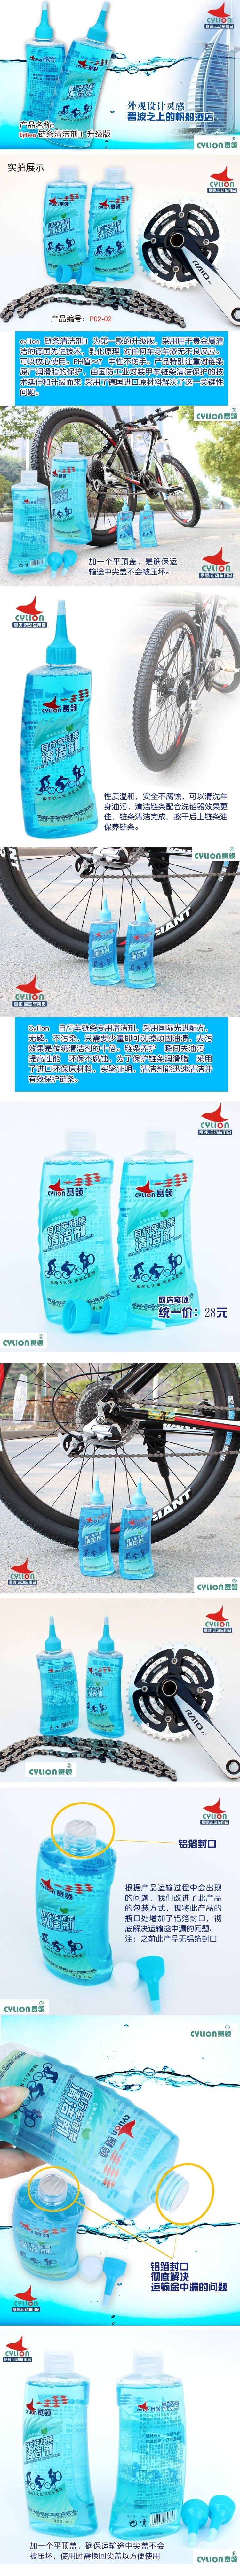 CYLION MAINTENANCE OF BIKE BASIKAL BICYCLE CHAIN CLEANING OIL